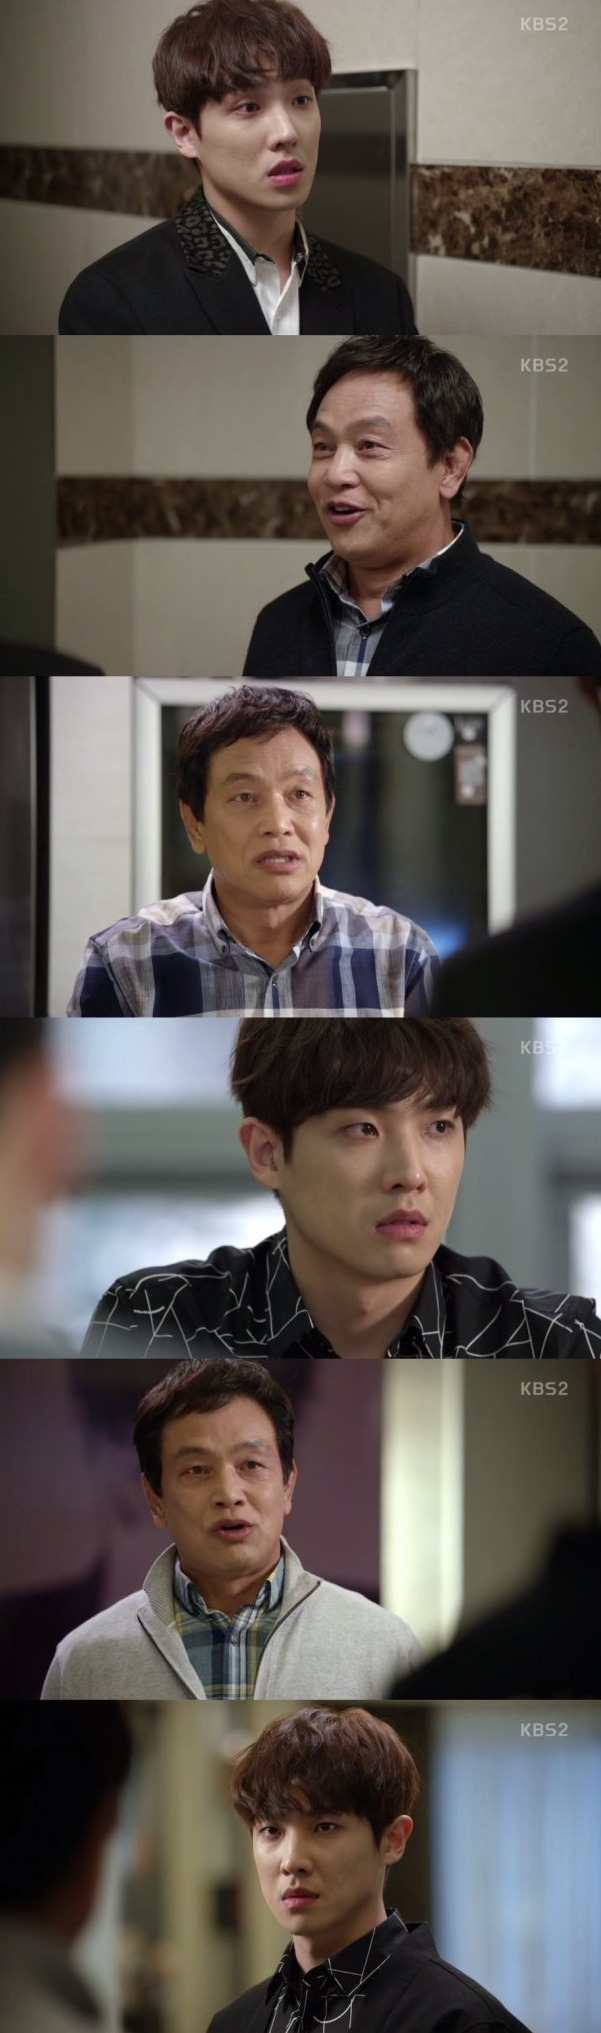 [Spoiler] Added episodes 13 and 14 captures for the Korean drama 'Father is Strange'